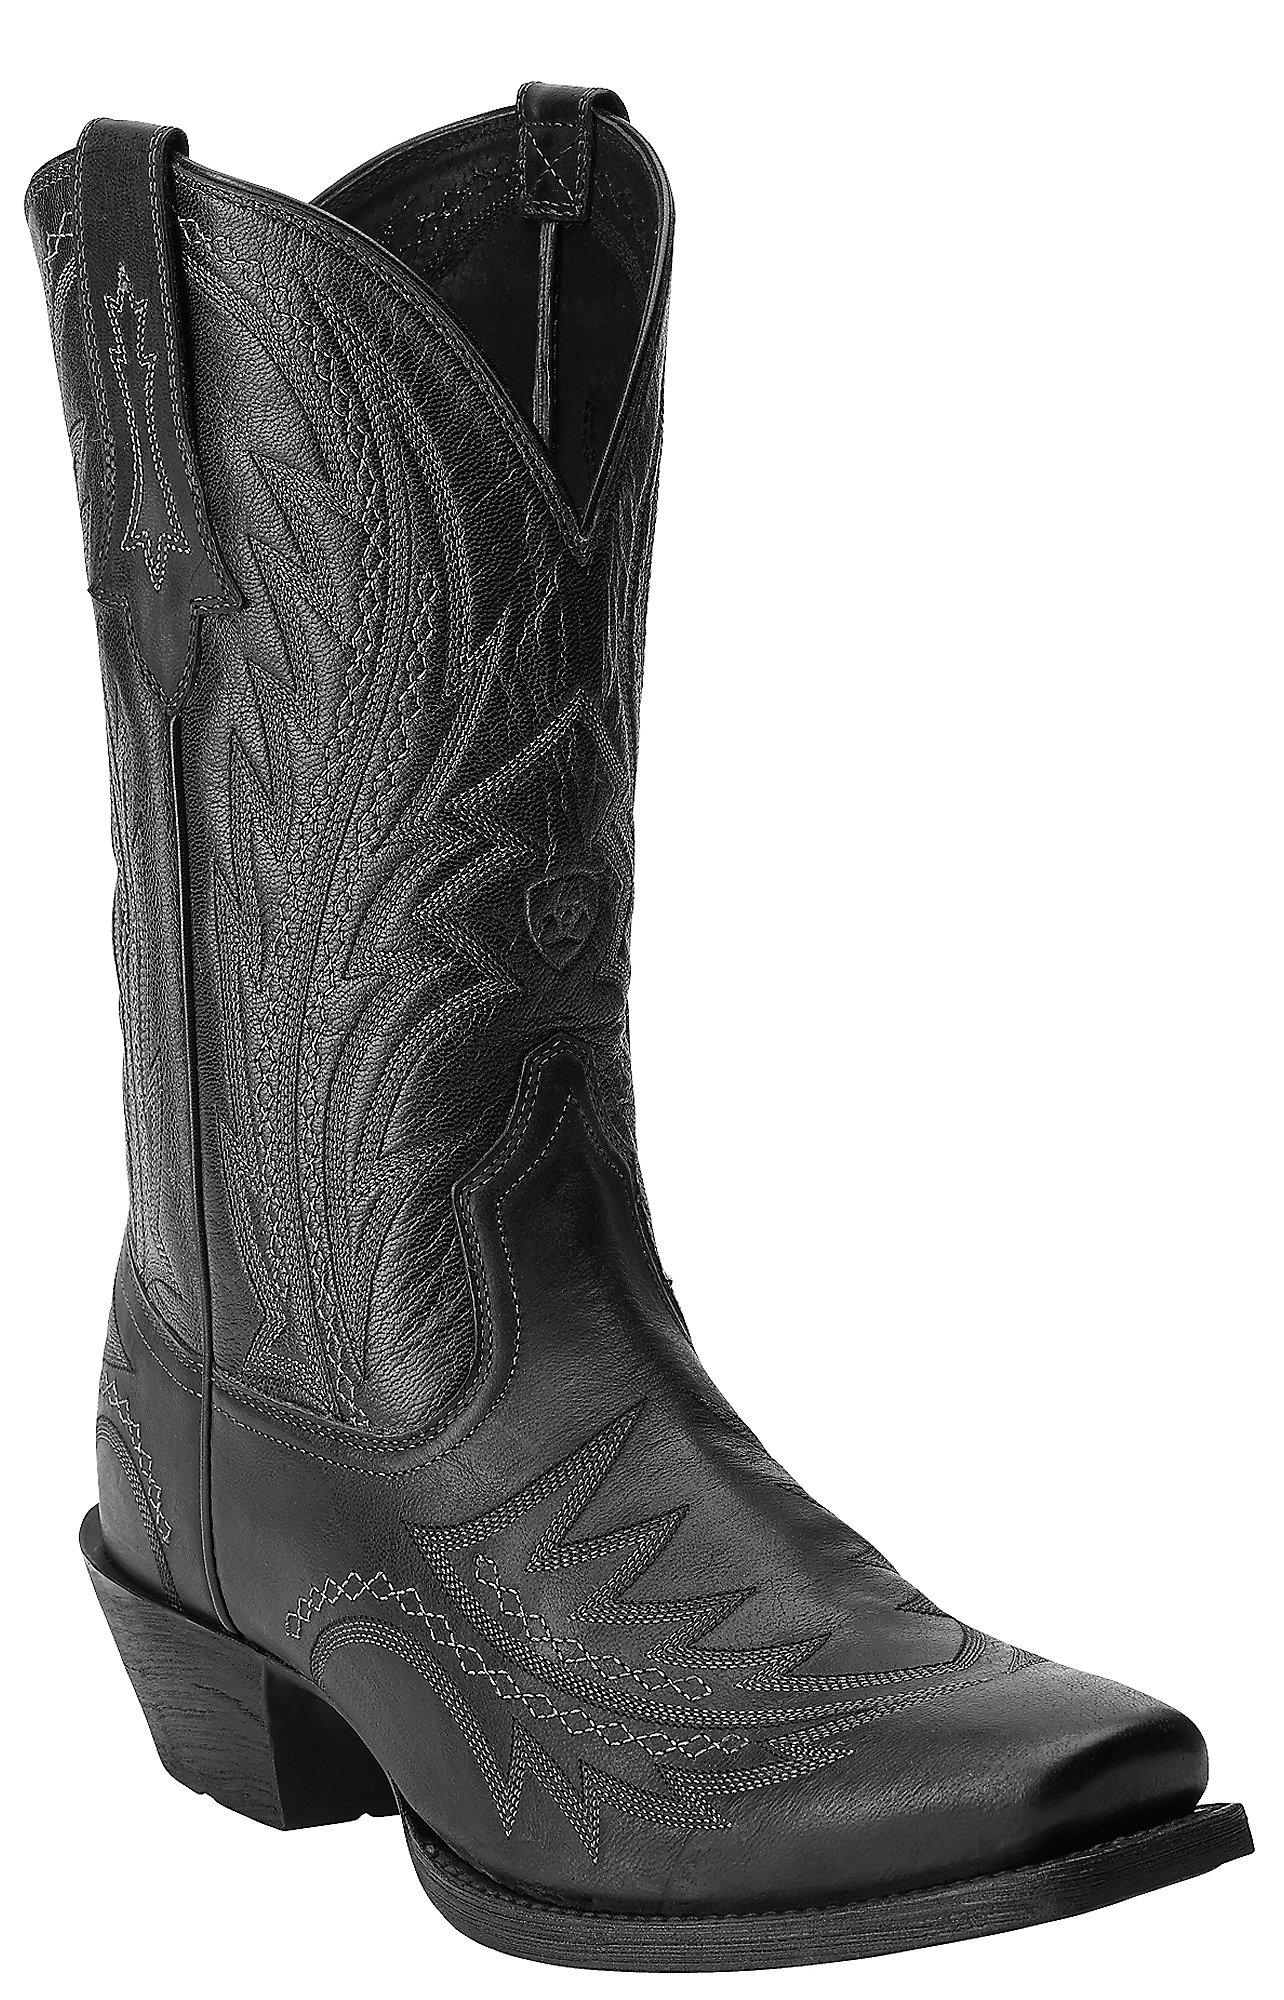 Black Square Toe Boots Mens Square Toe Western Boot